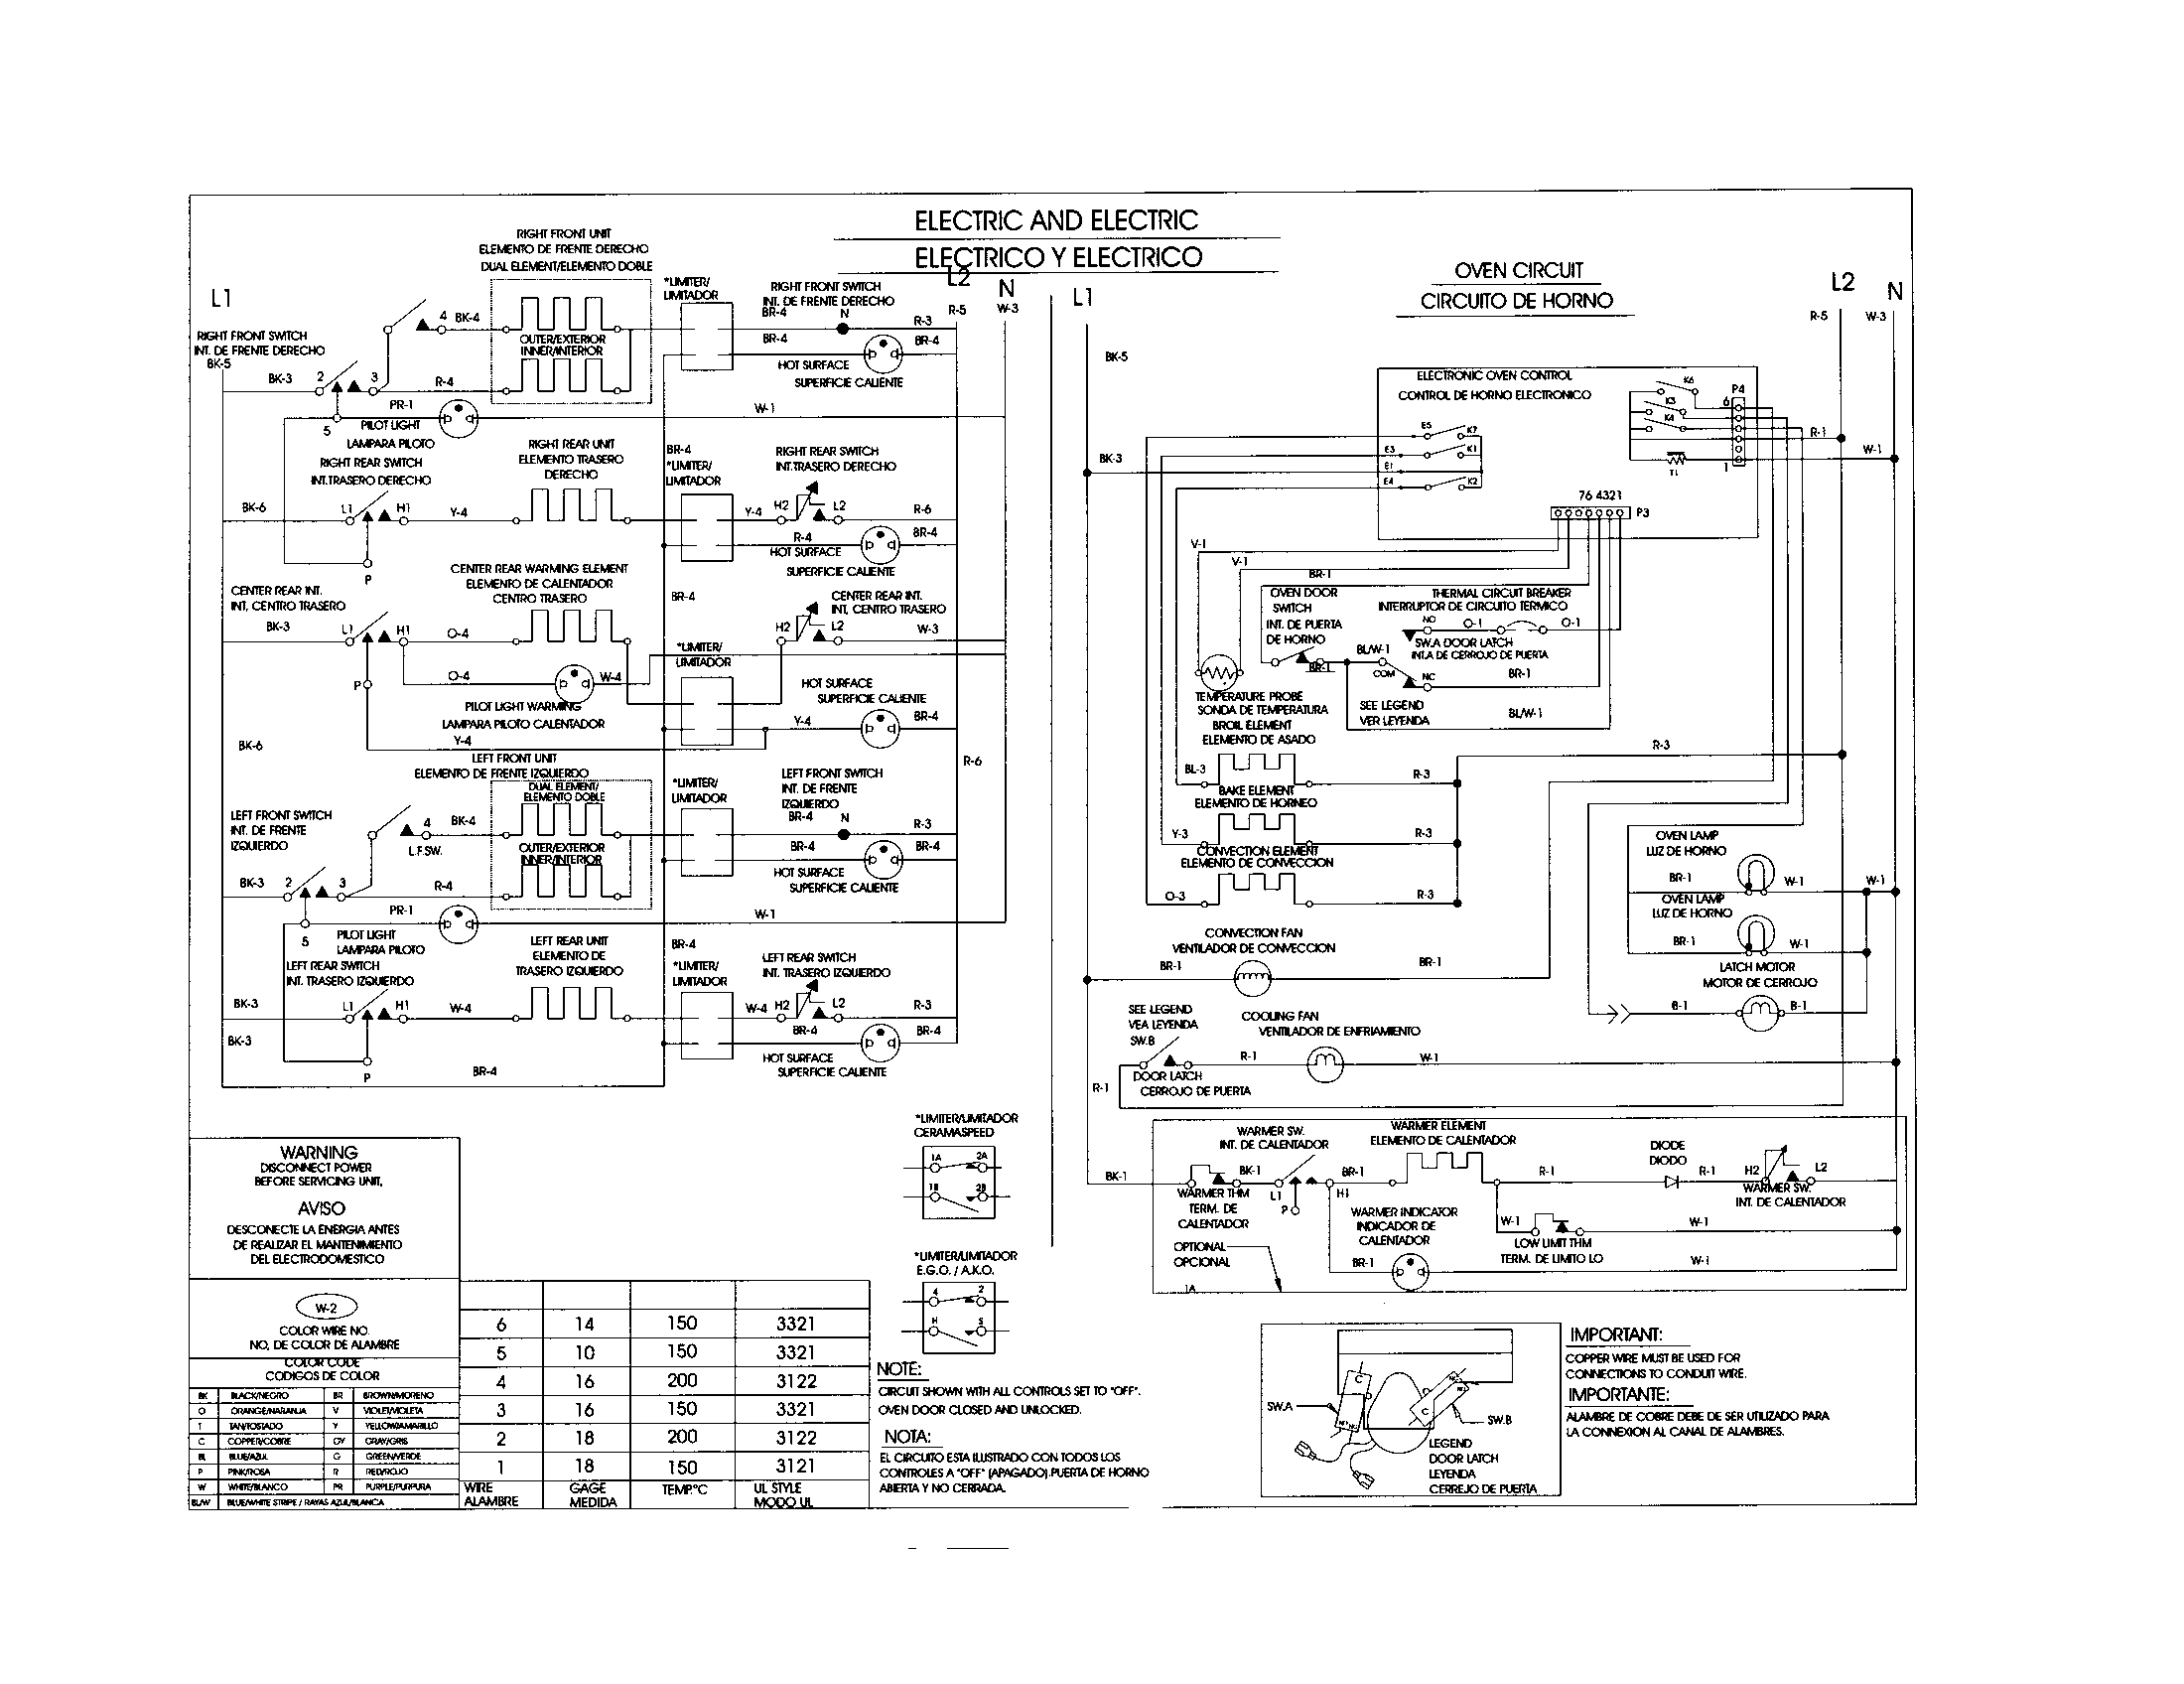 kenmore dishwasher wiring diagram to wiring diagram parts with regard to kenmore elite dishwasher 665 parts diagram which kenmore part 692033 wiring diagram which wiring diagrams  at mifinder.co